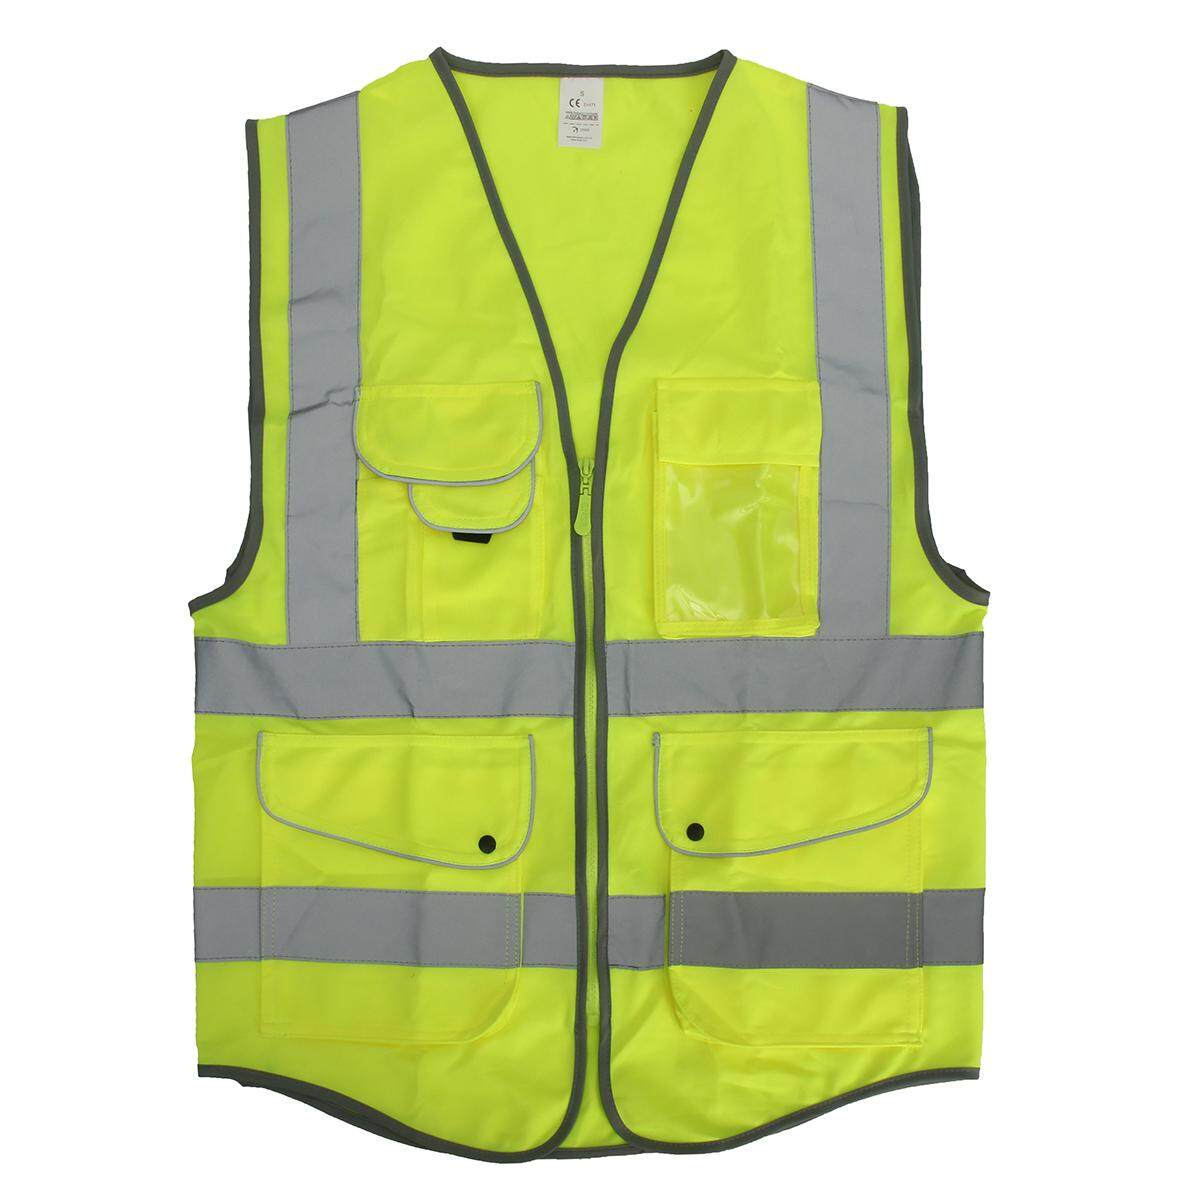 5 Pockets Neon Green High Visibility Reflective Multi Construction Safety Vest - Intl By Audew.